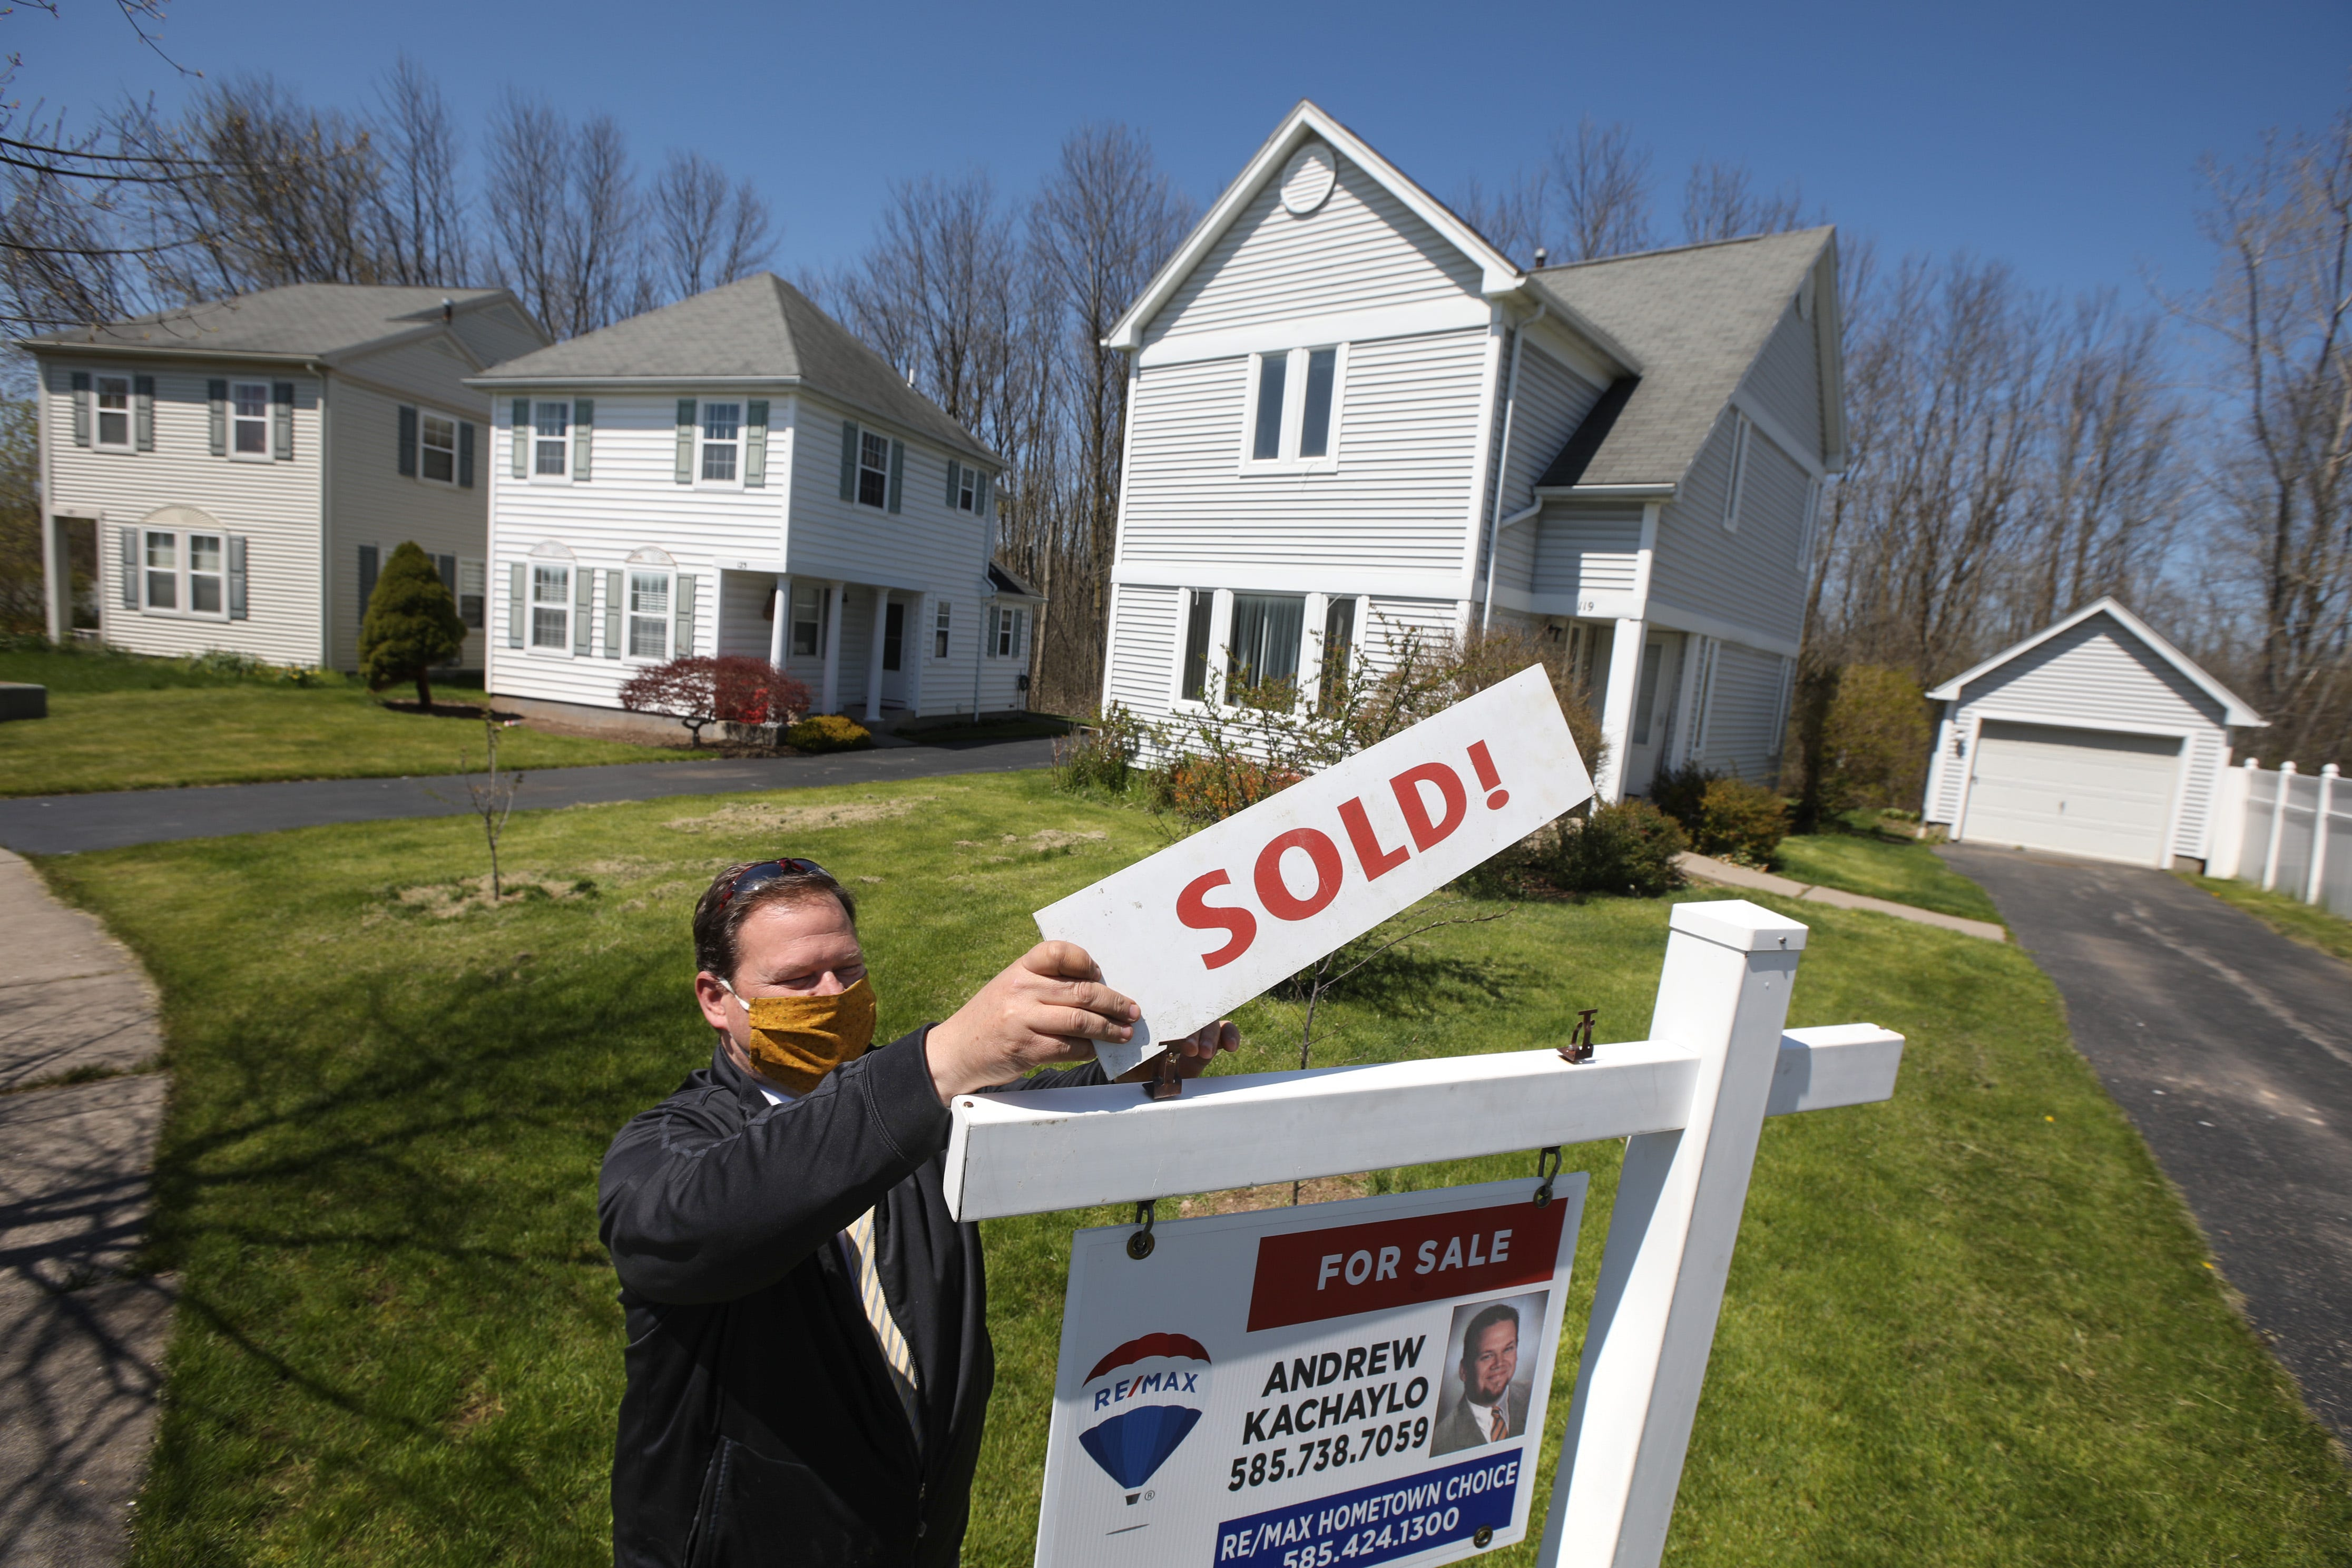 Rochester Ny Real Estate To Restart In Person Showing How Will Rochester S Real Estate Market Look After Shutdown